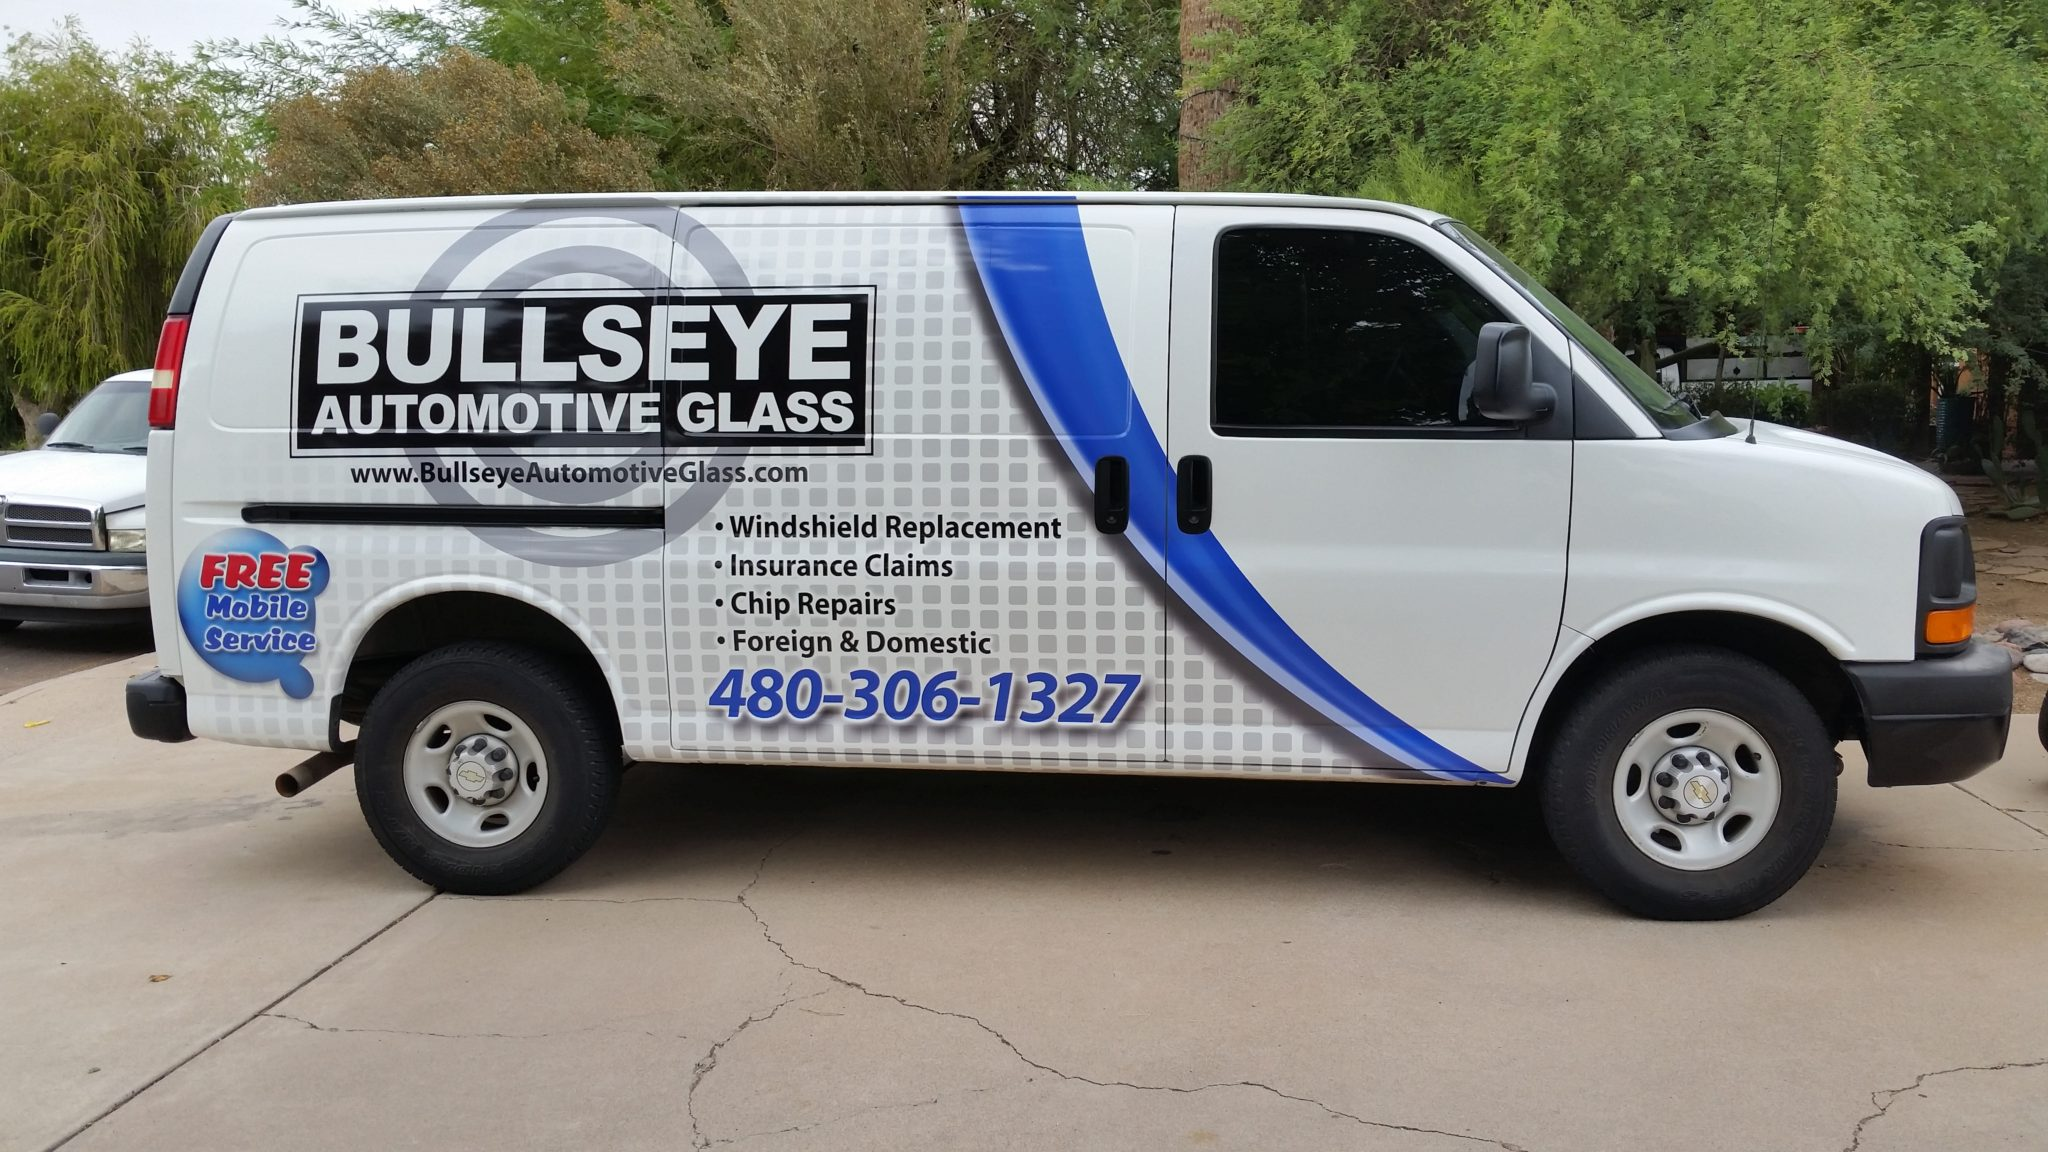 Auto Glass Quote Amazing How To Get An Auto Glass Replacement And Windshield Repair Quote